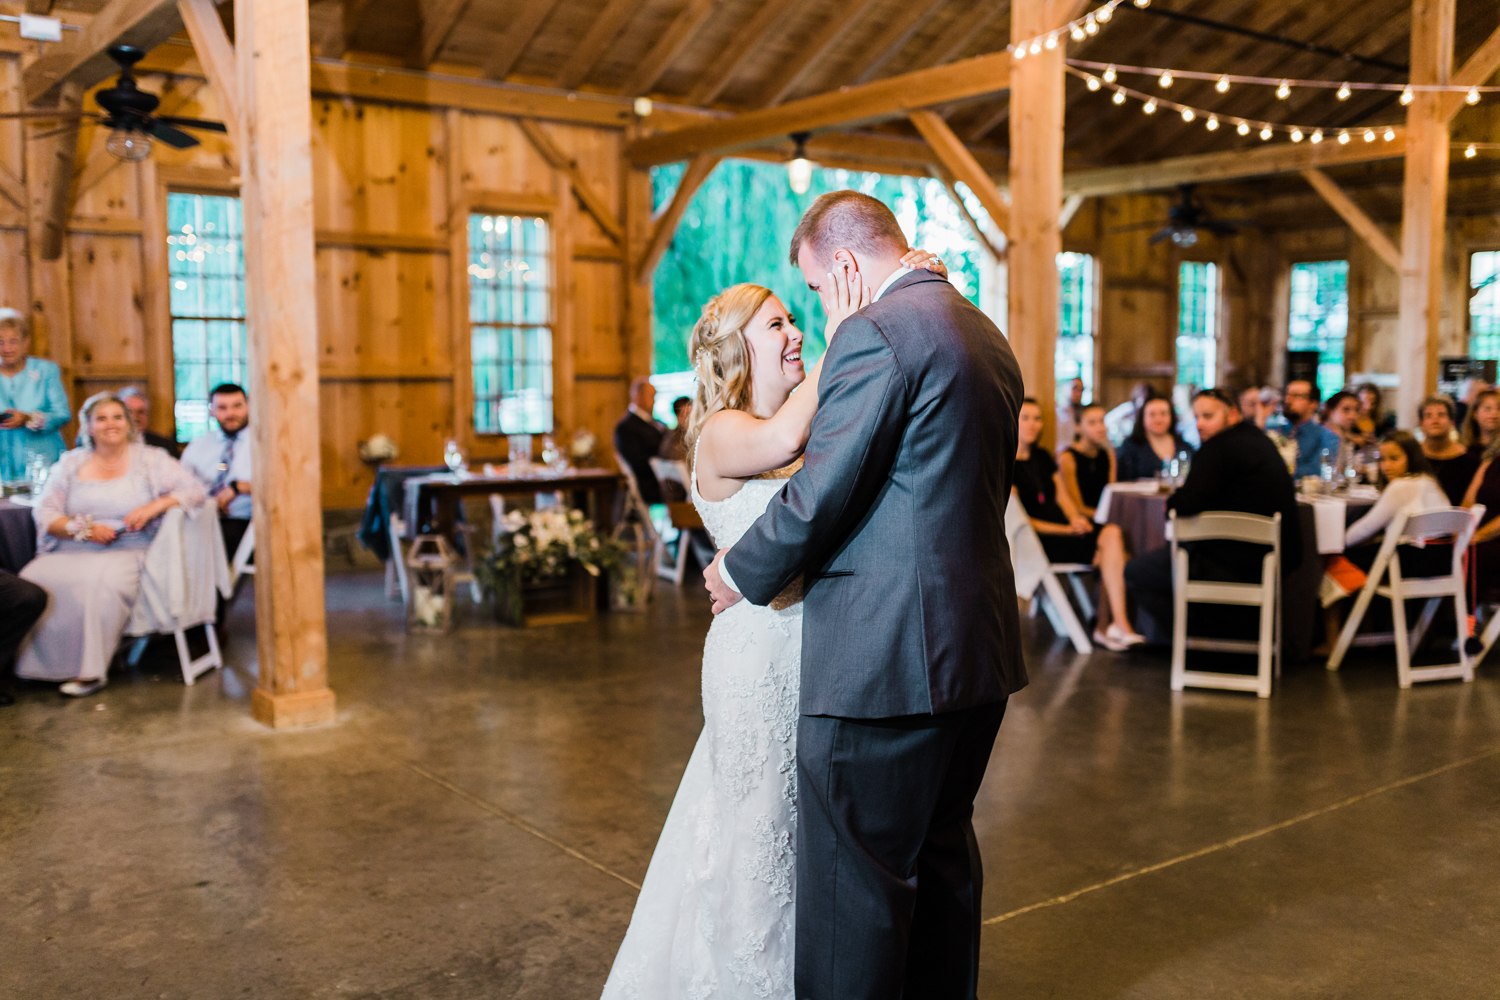 Rustic wedding venues in Maryland - Bride and Groom first dance - Maryland wedding photo and video